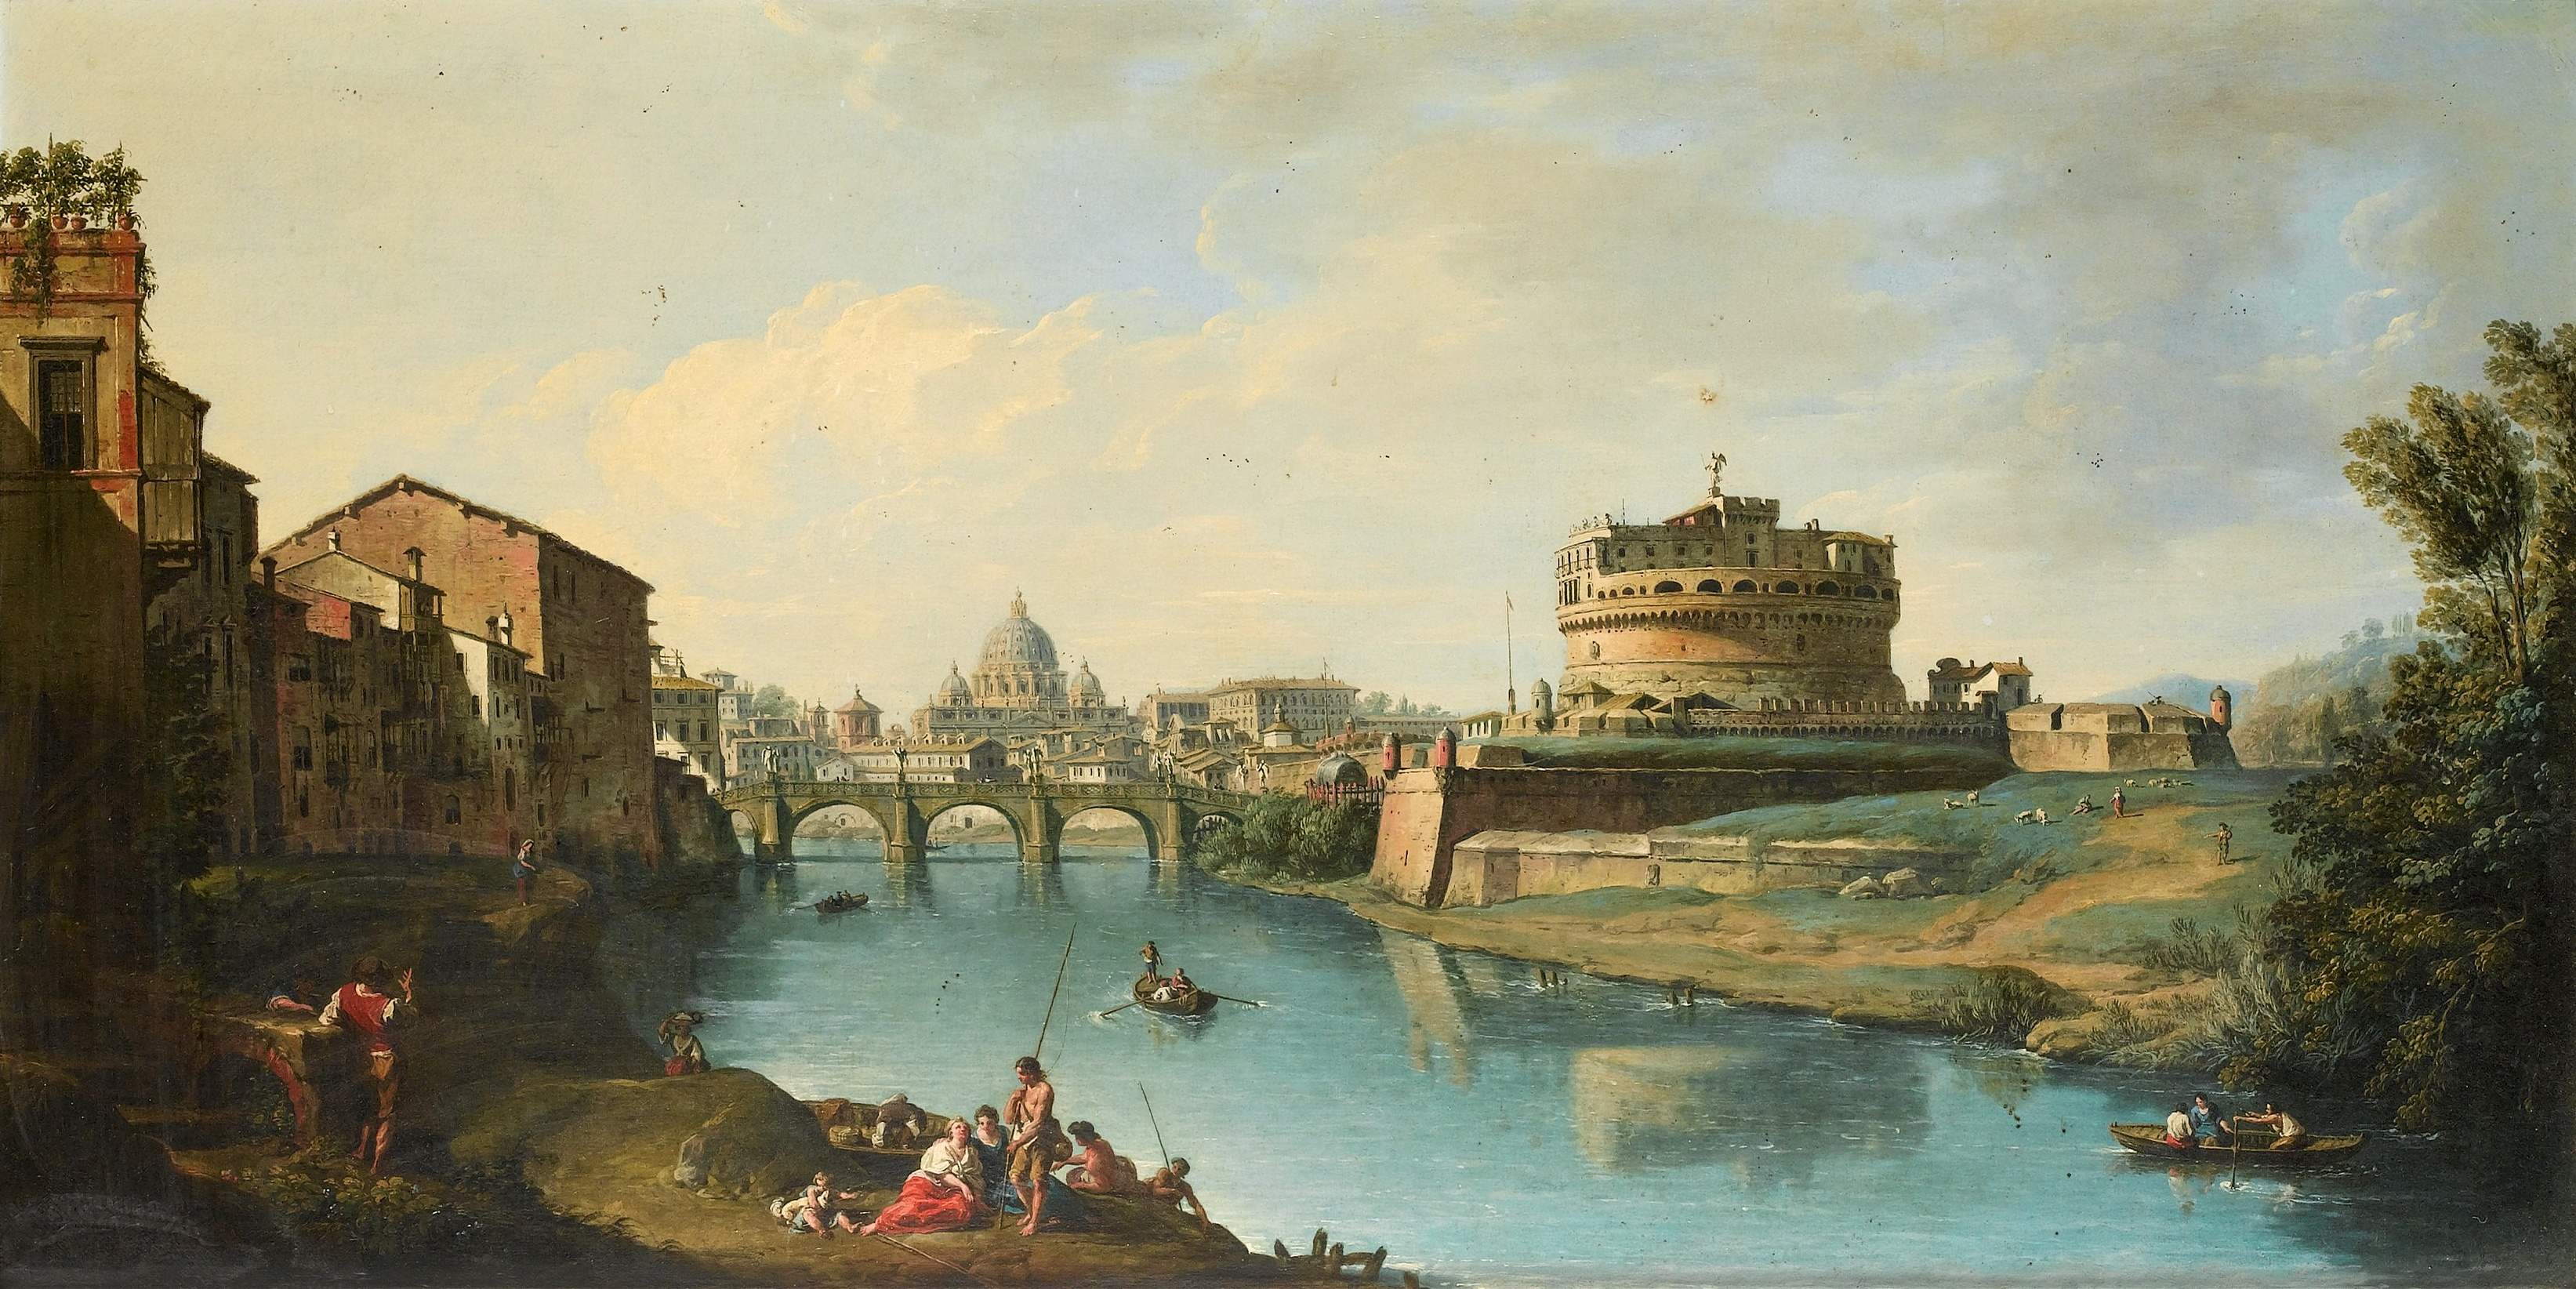 View_of_the_Tiber_Looking_Towards_the_Castel_Sant'Angelo,_with_Saint_Peter's_in_the_Distance